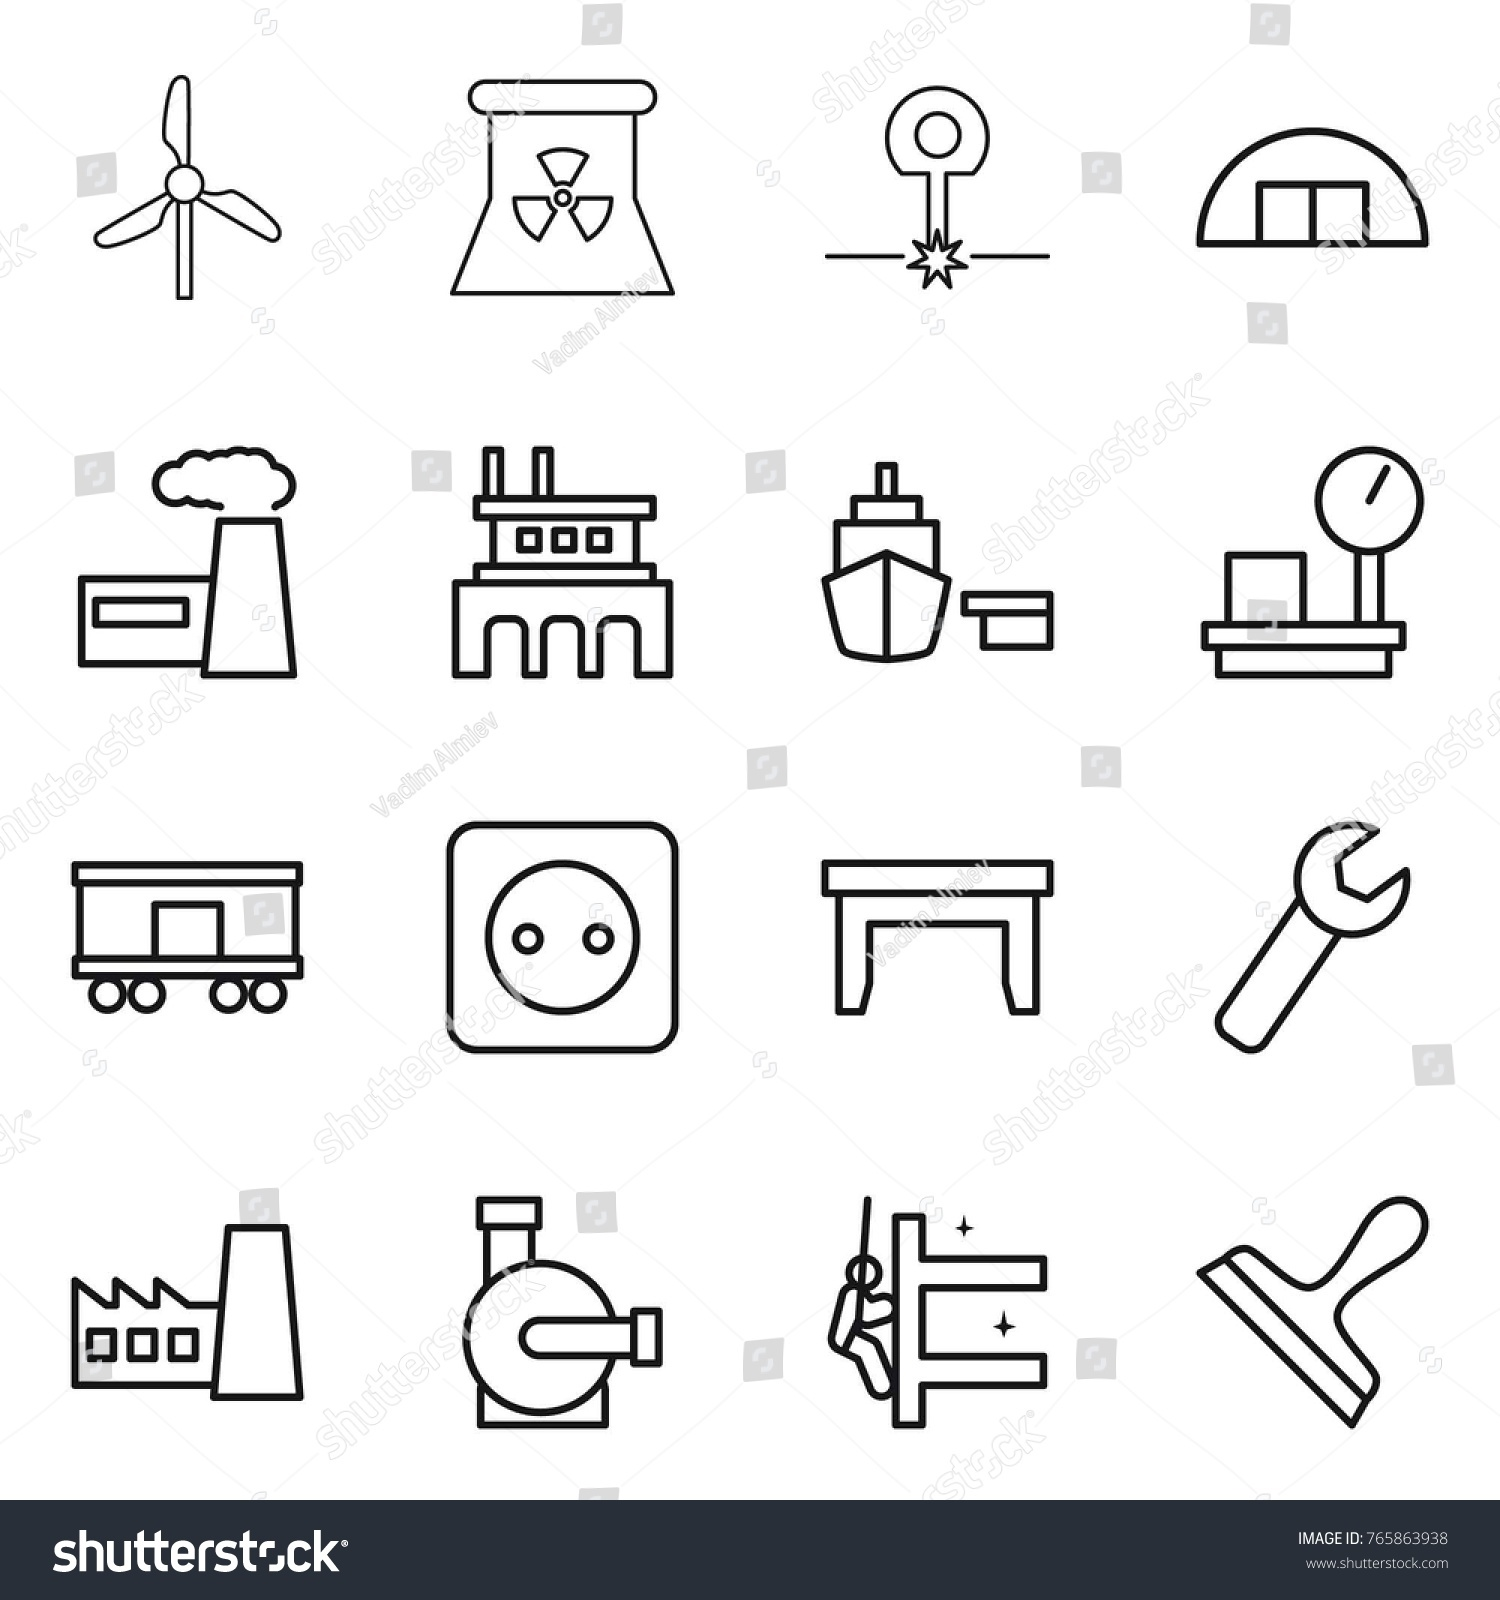 Thin line icon set windmill nuclear stock vector 765863938 thin line icon set windmill nuclear power laser hangare factory pooptronica Gallery